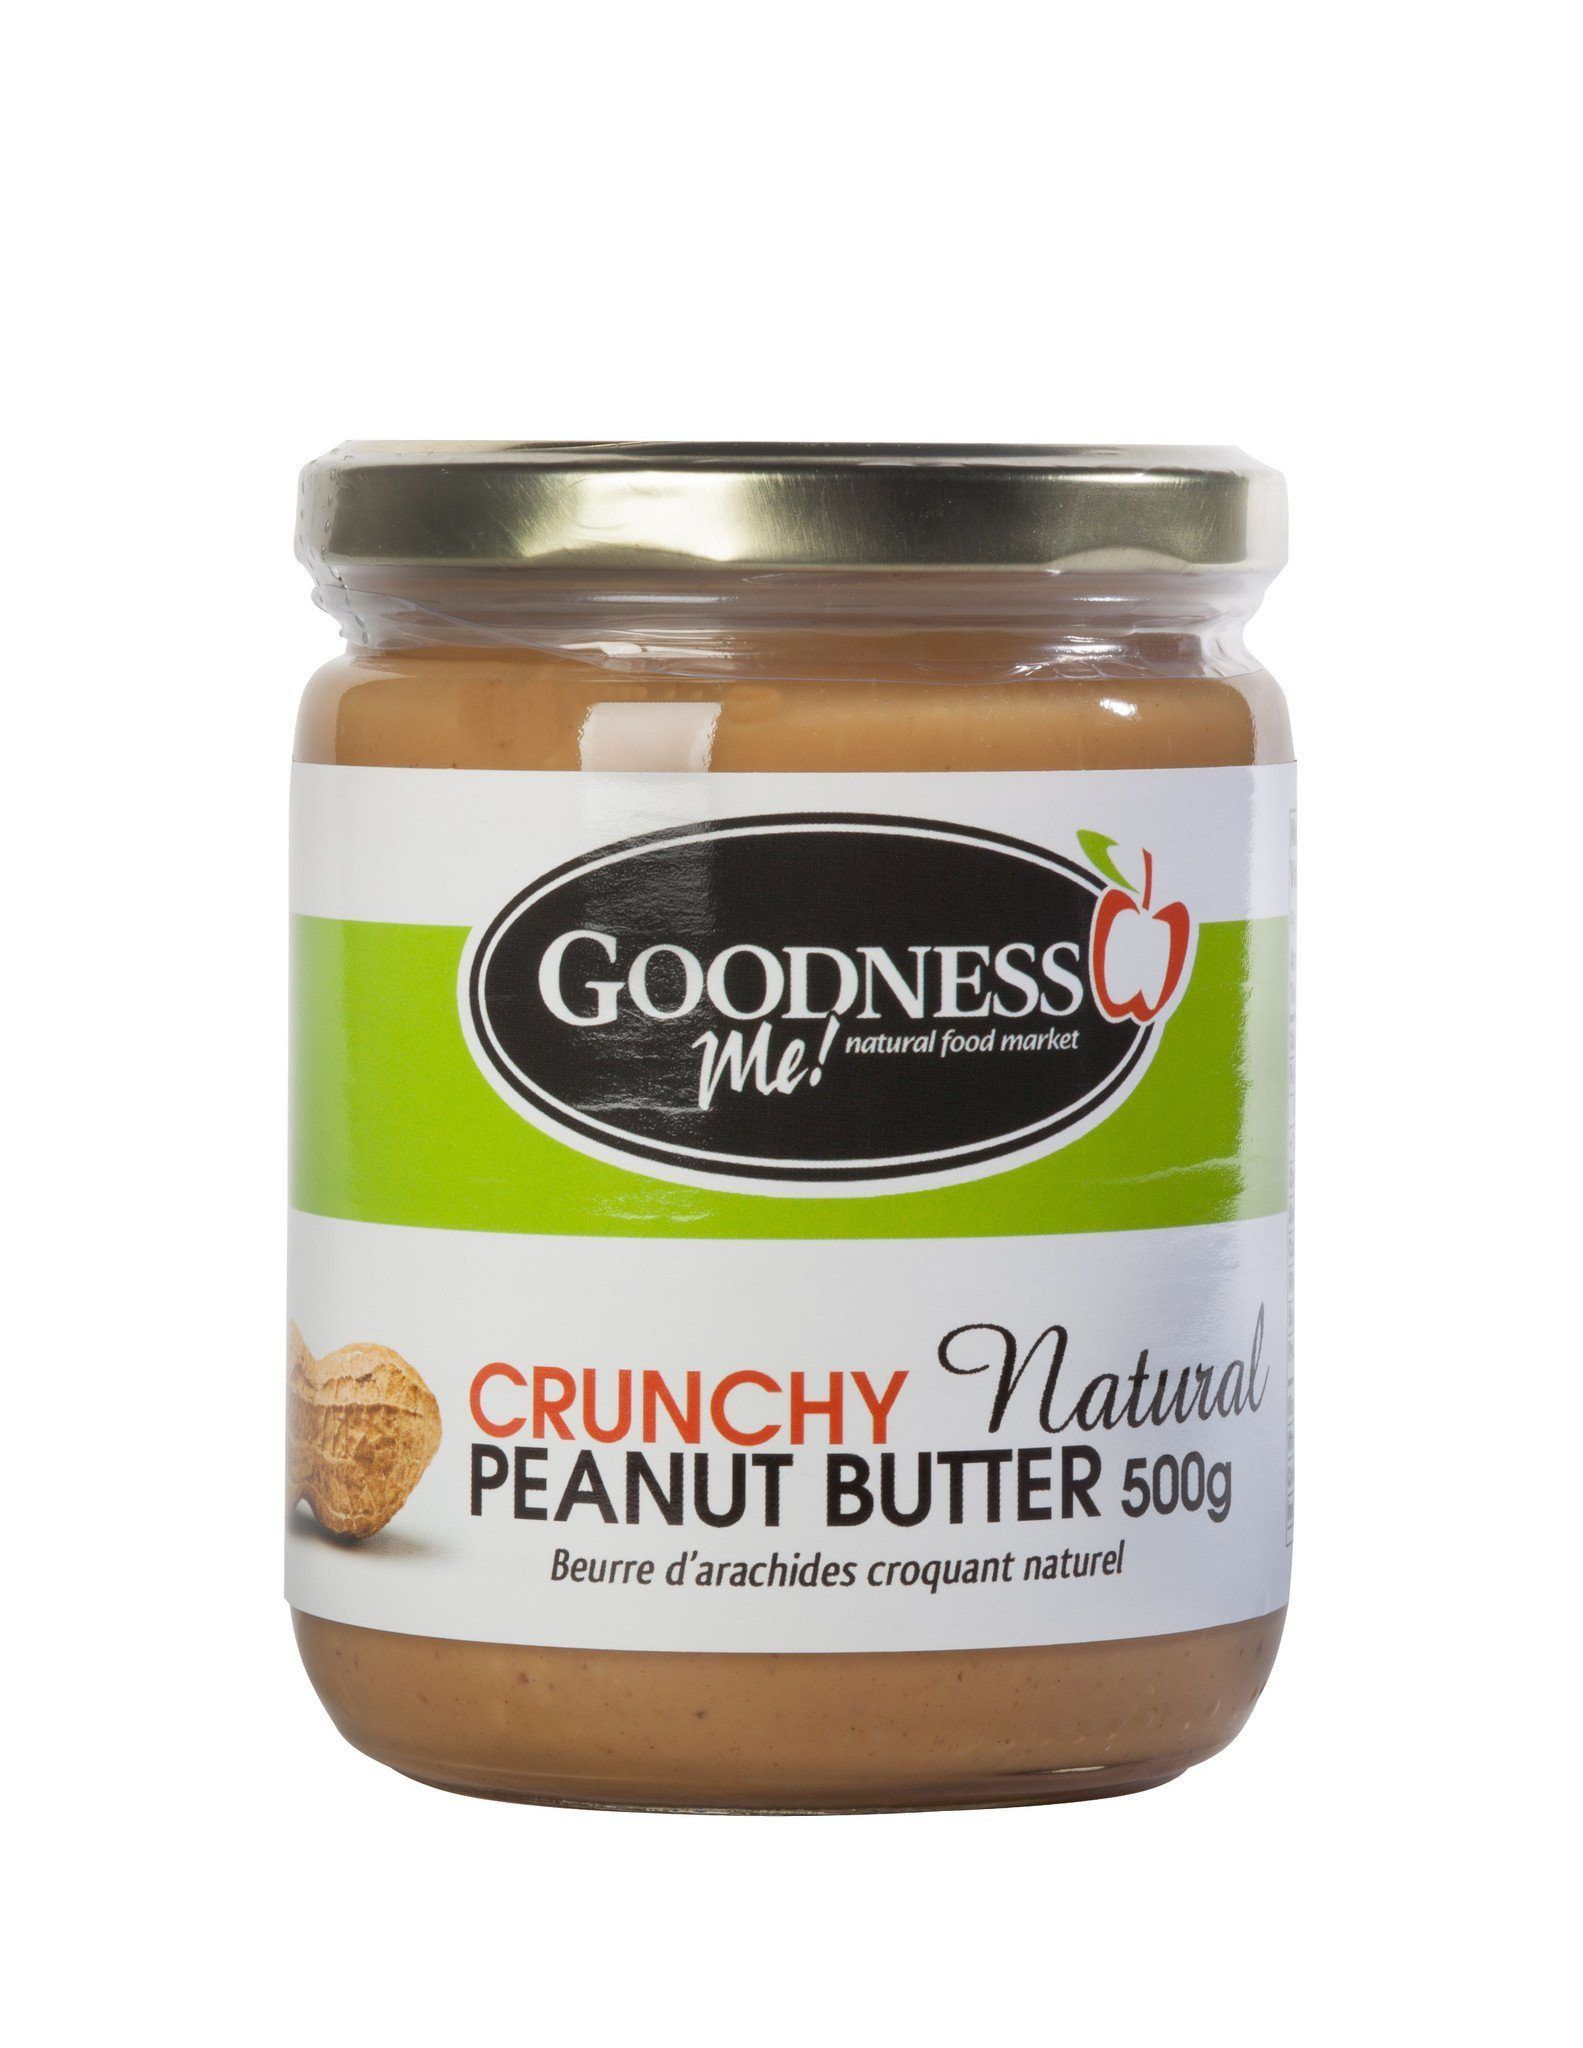 Food & Drink - Goodness Me! - Crunchy Peanut Butter, 500g